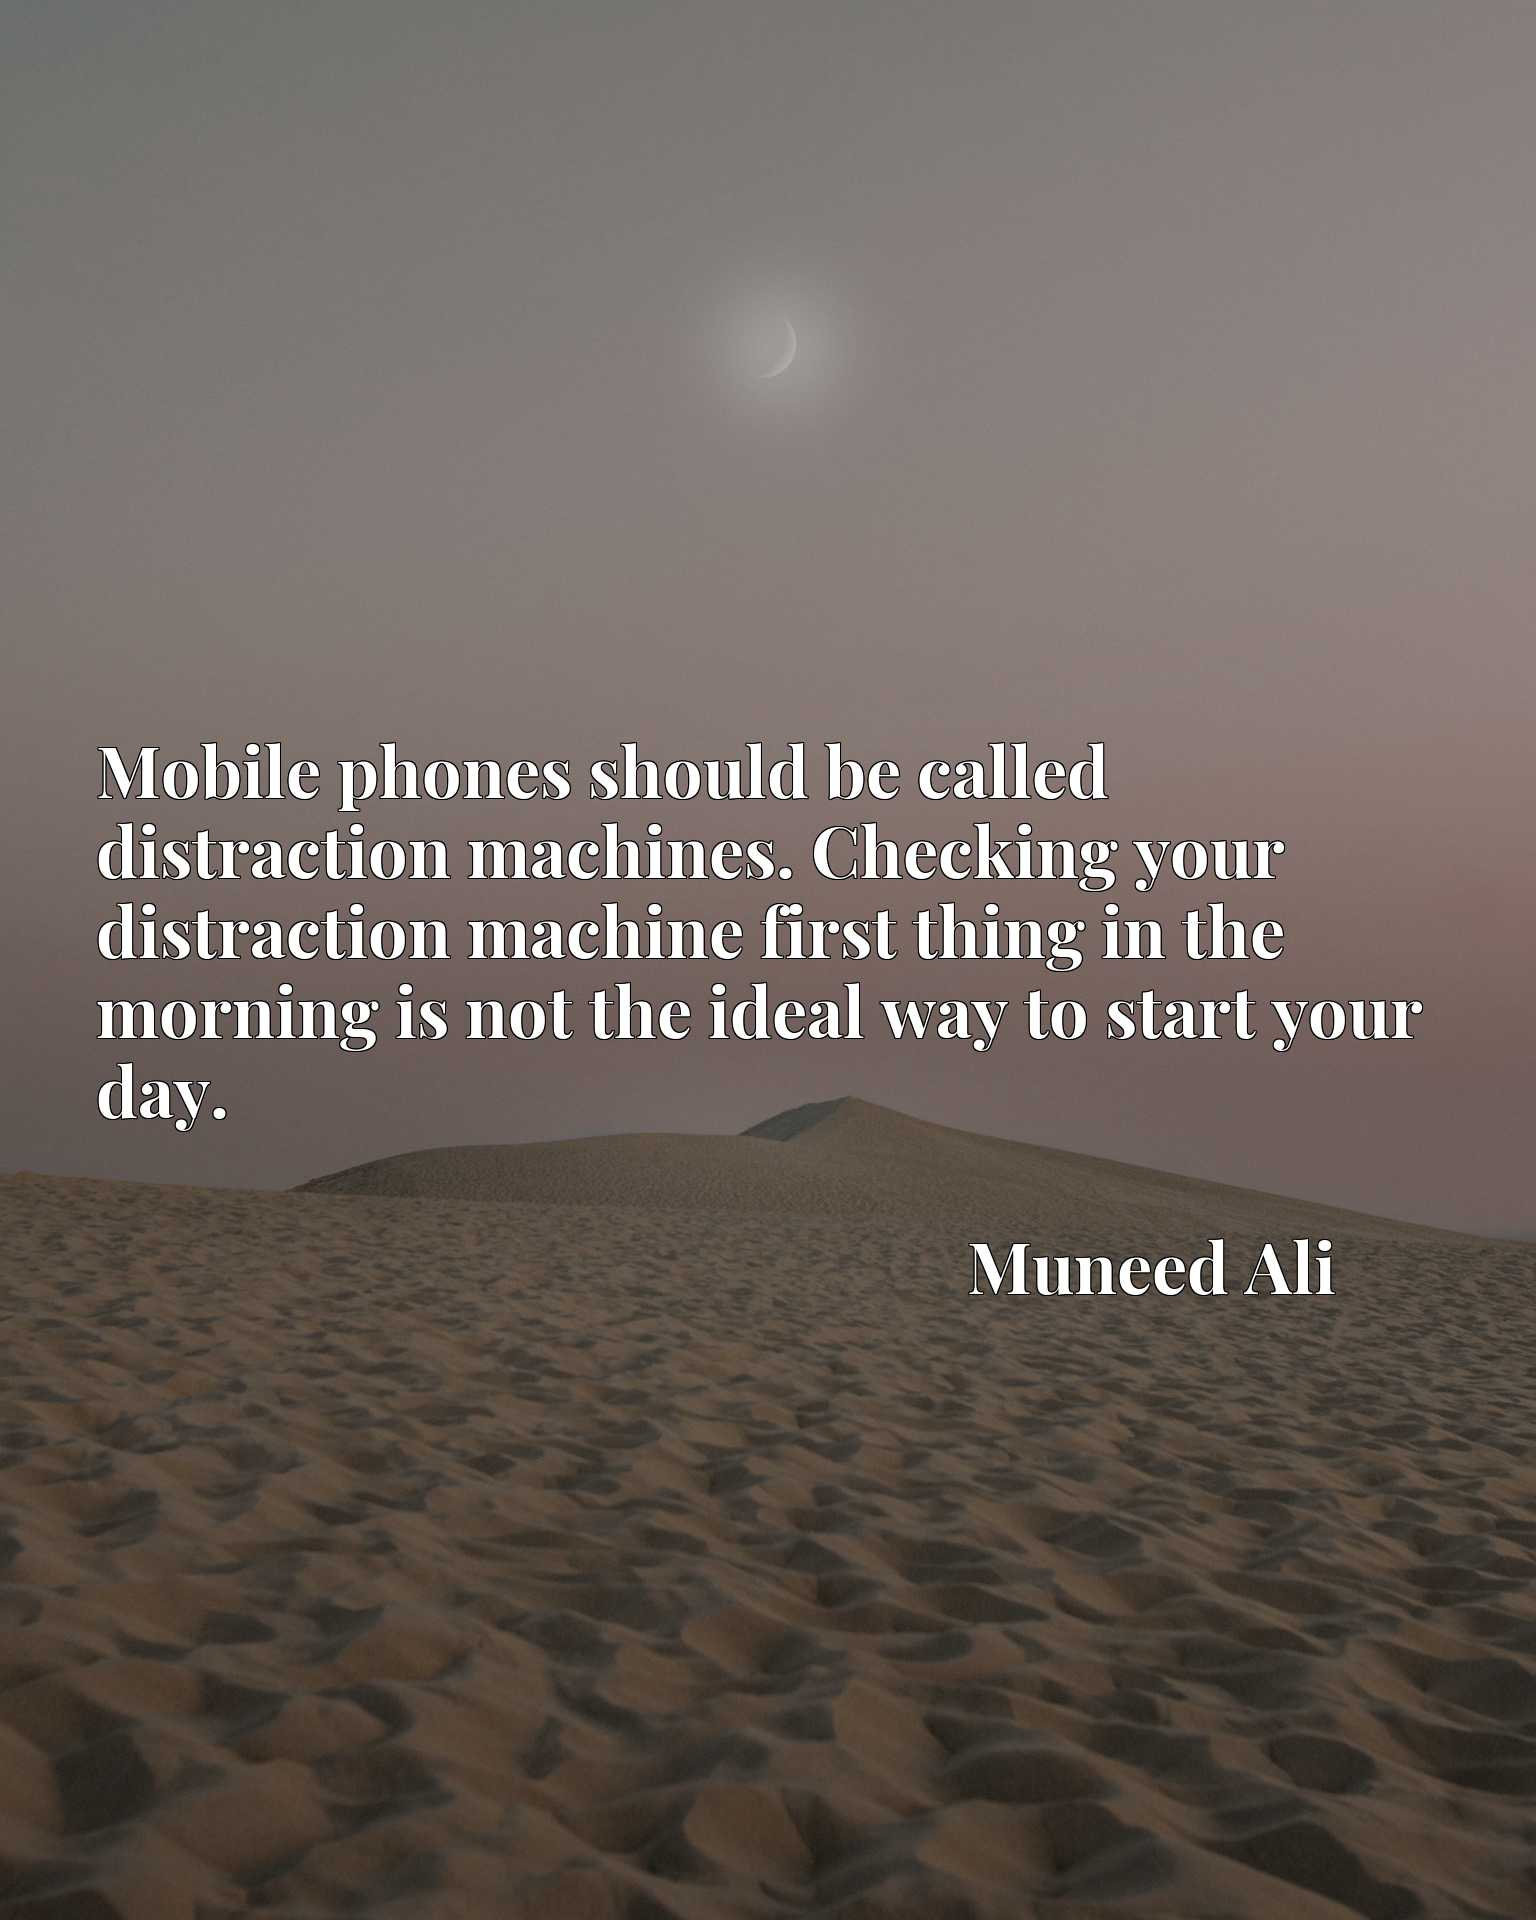 Mobile phones should be called distraction machines. Checking your distraction machine first thing in the morning is not the ideal way to start your day.